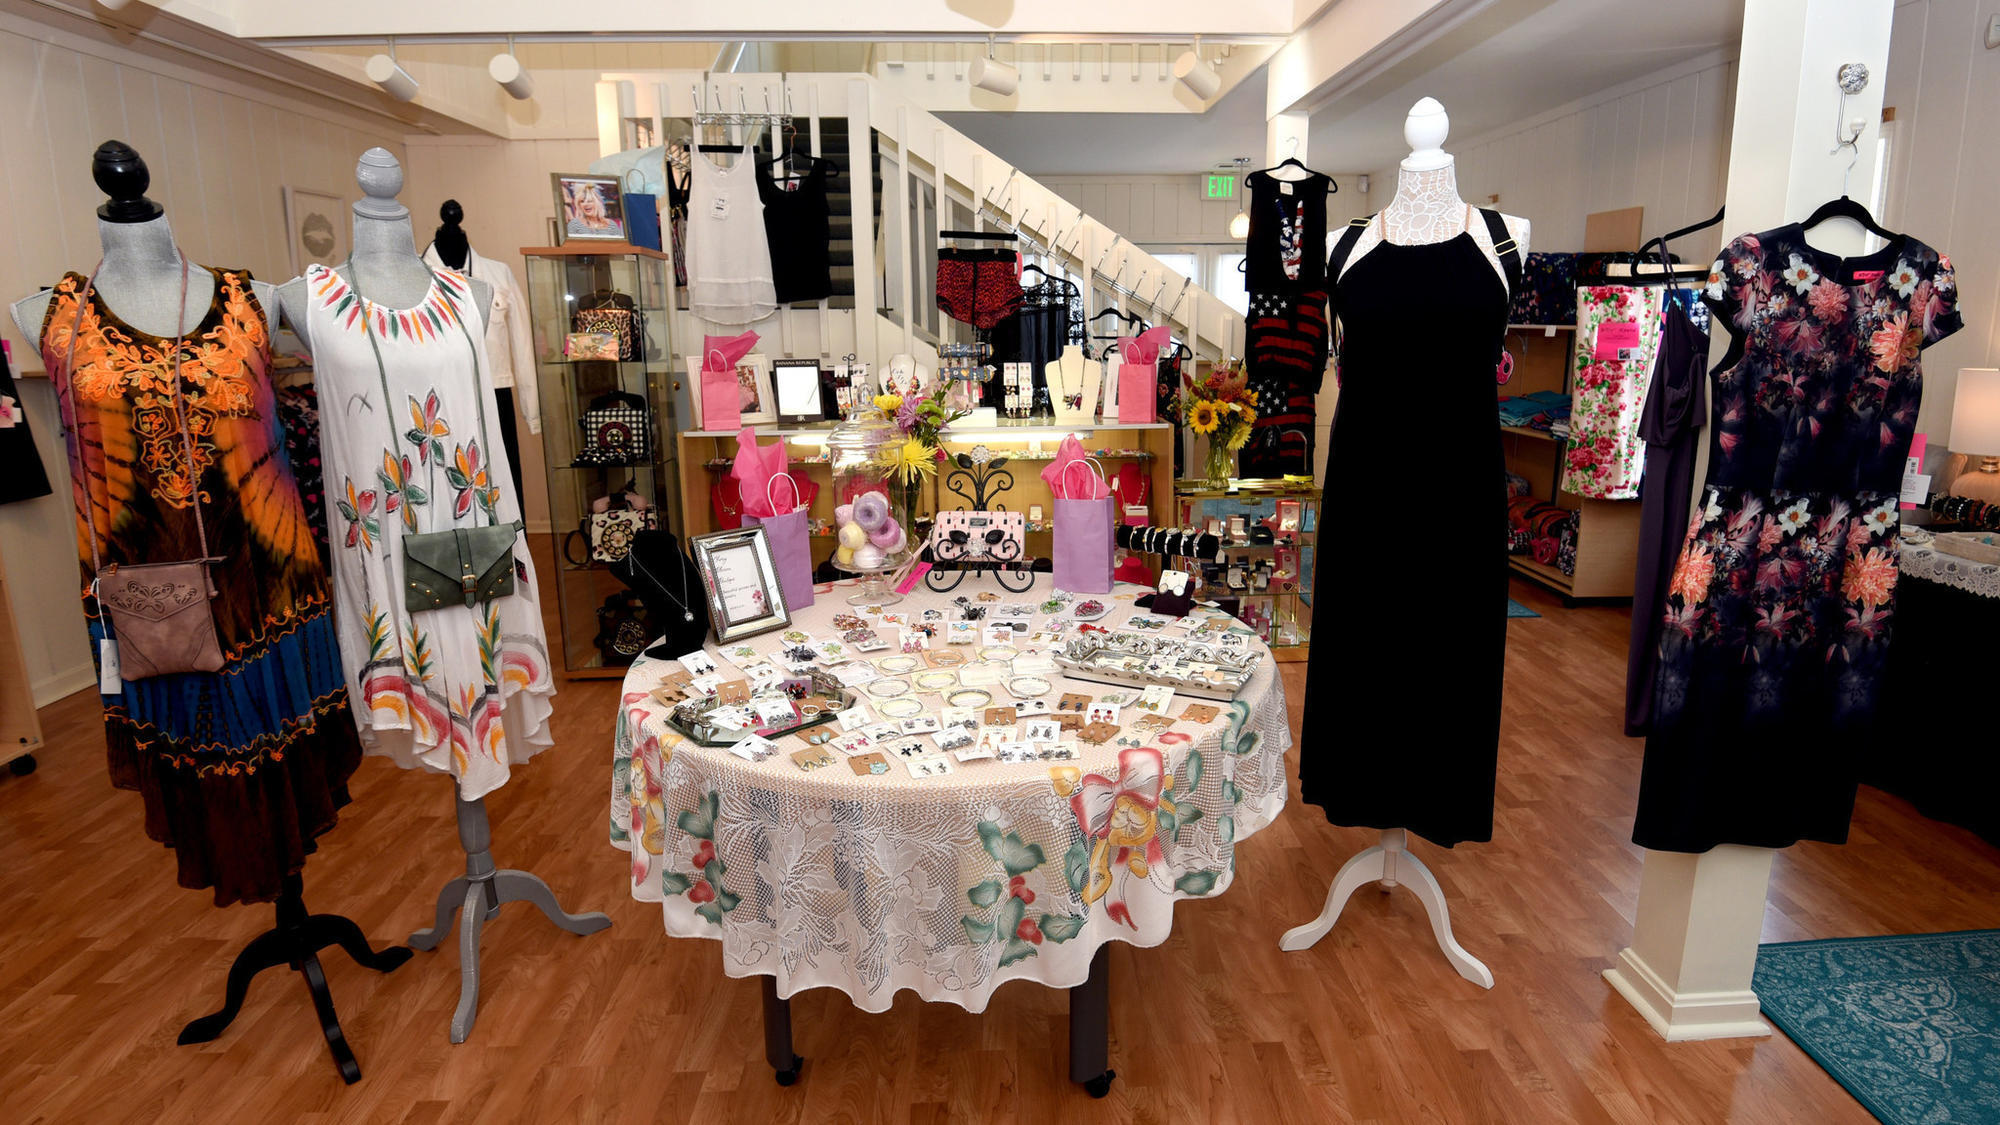 Cherry Blossom Boutique Offers Handmade Jewelry As Well As